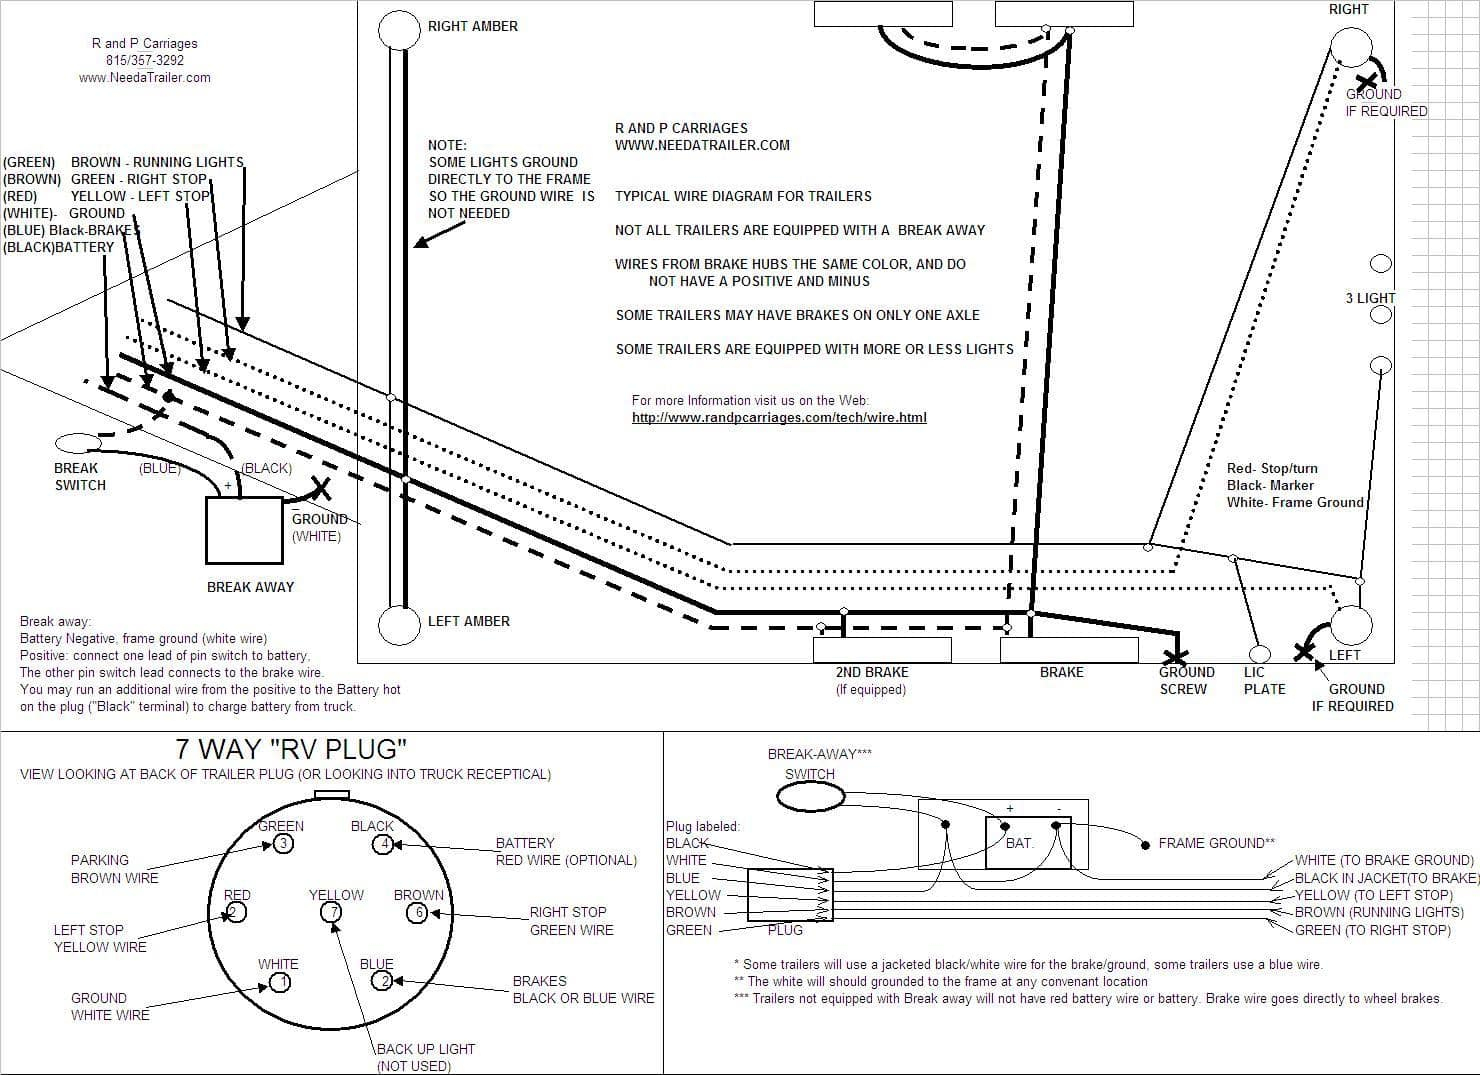 7 Way Plug Information | R And P Carriages | Cargo, Utility, Dump - Trailer 7 Wire Wiring Diagram